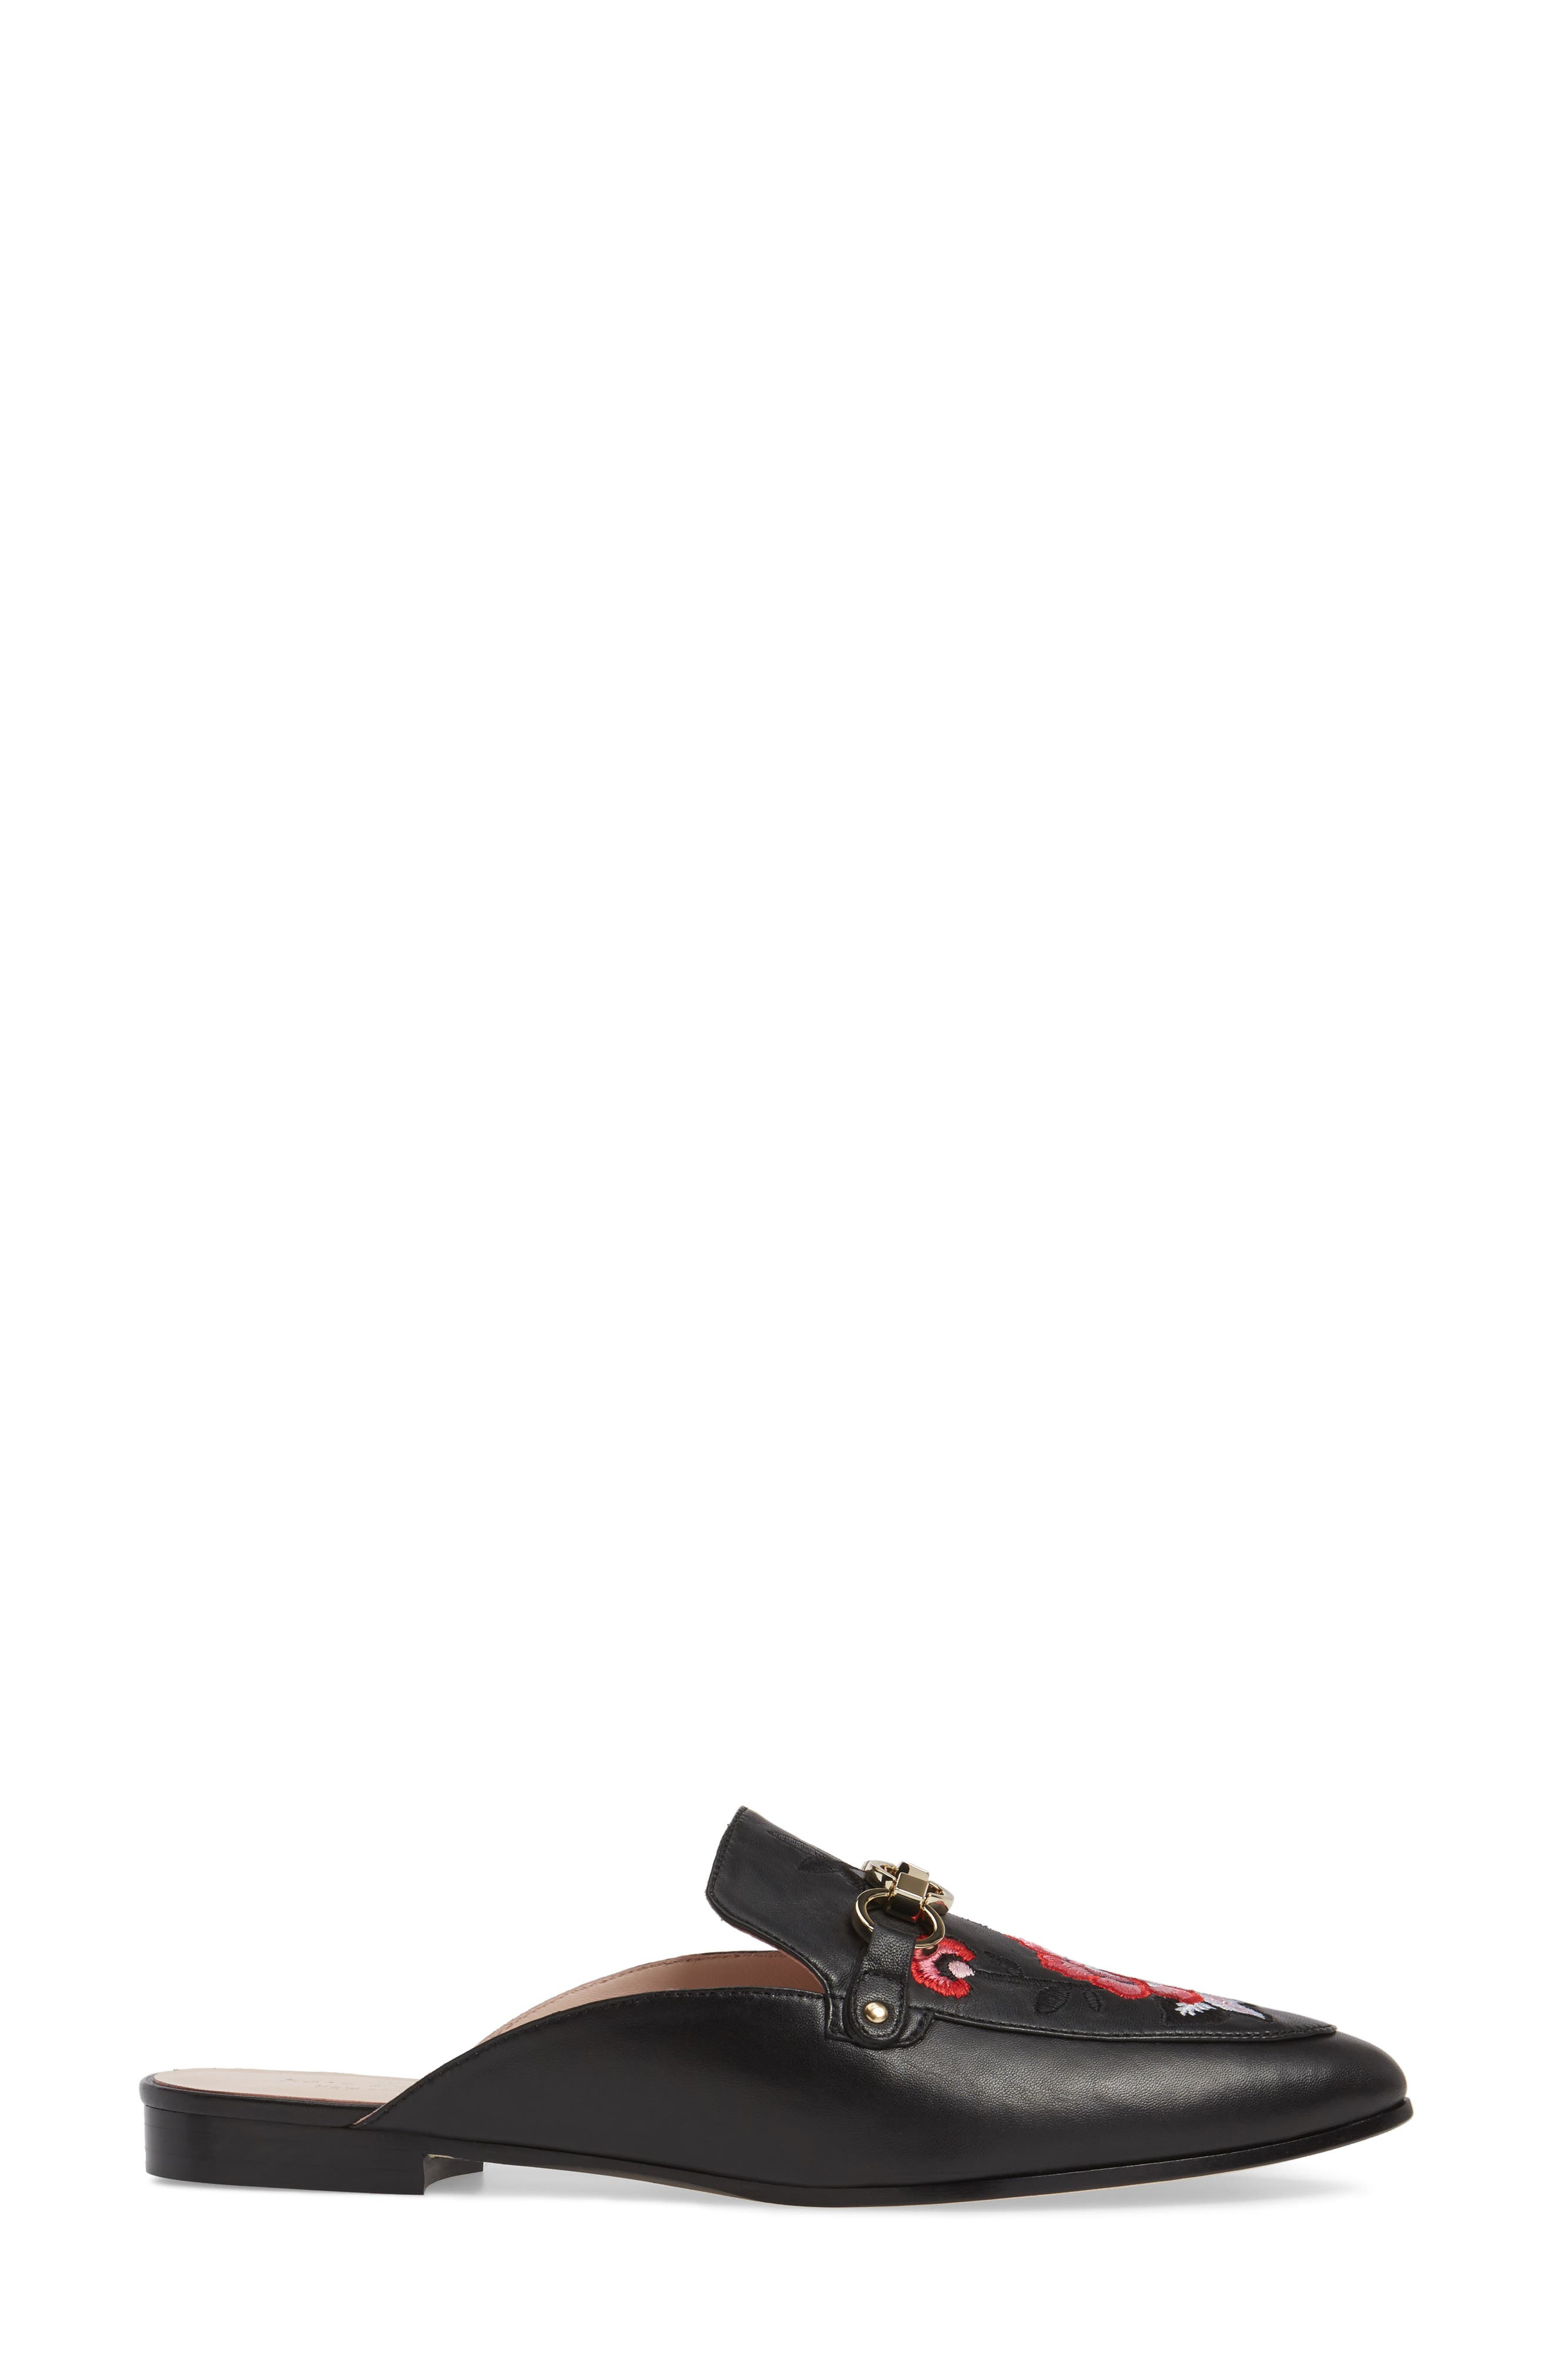 canyon embroidered loafer mule,                             Alternate thumbnail 3, color,                             001